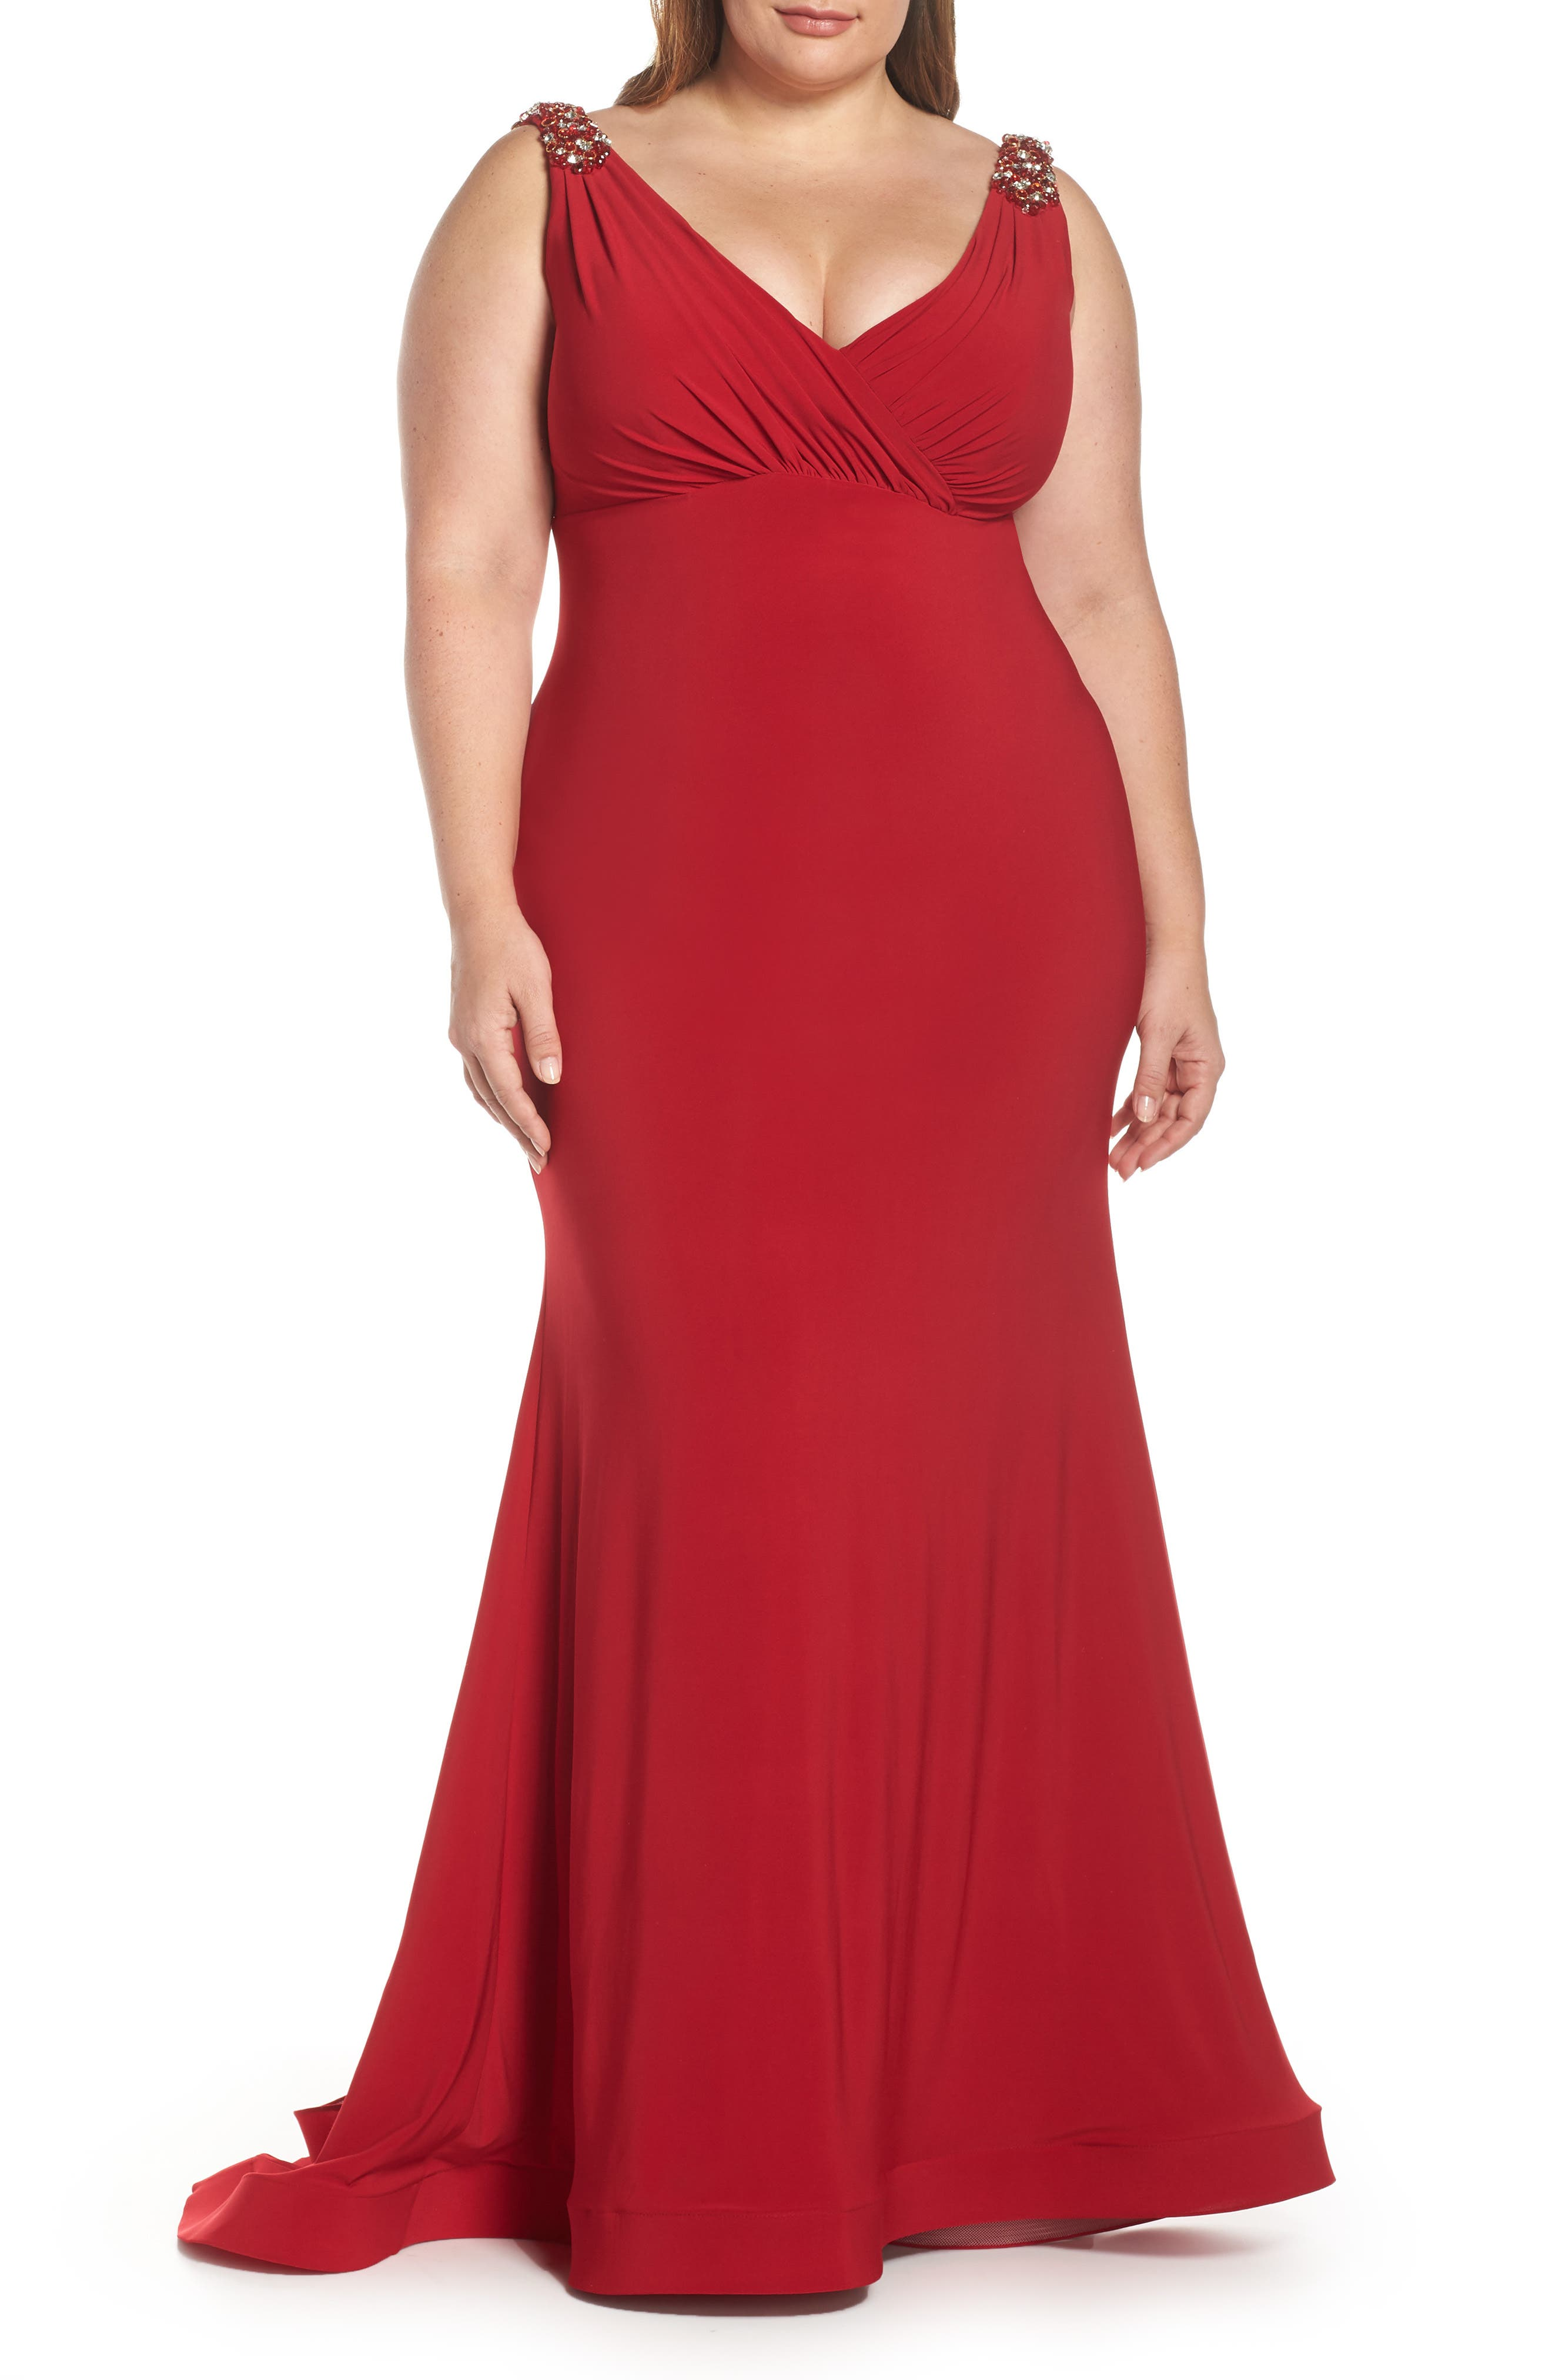 1950s Formal Dresses & Evening Gowns to Buy Plus Size Womens MAC Duggal Embellished Trumpet Evening Dress Size 24W - Red $398.00 AT vintagedancer.com